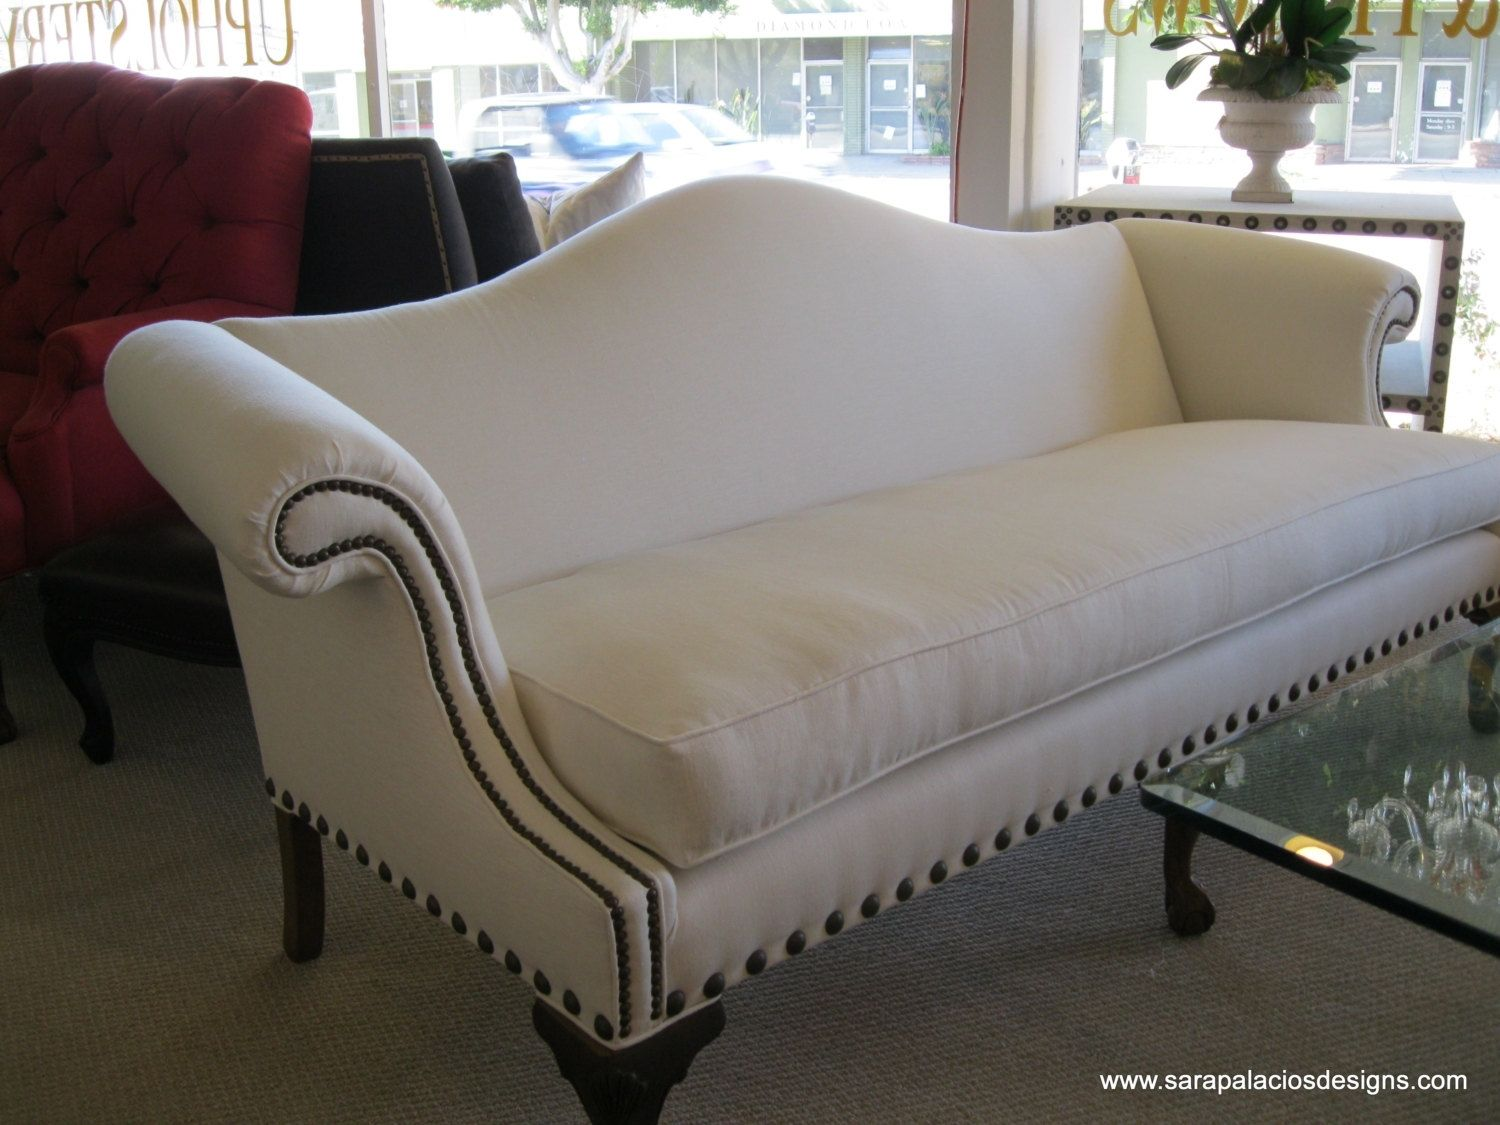 custom sofa maker los angeles bexley council collection handmade regency style by sara palacios